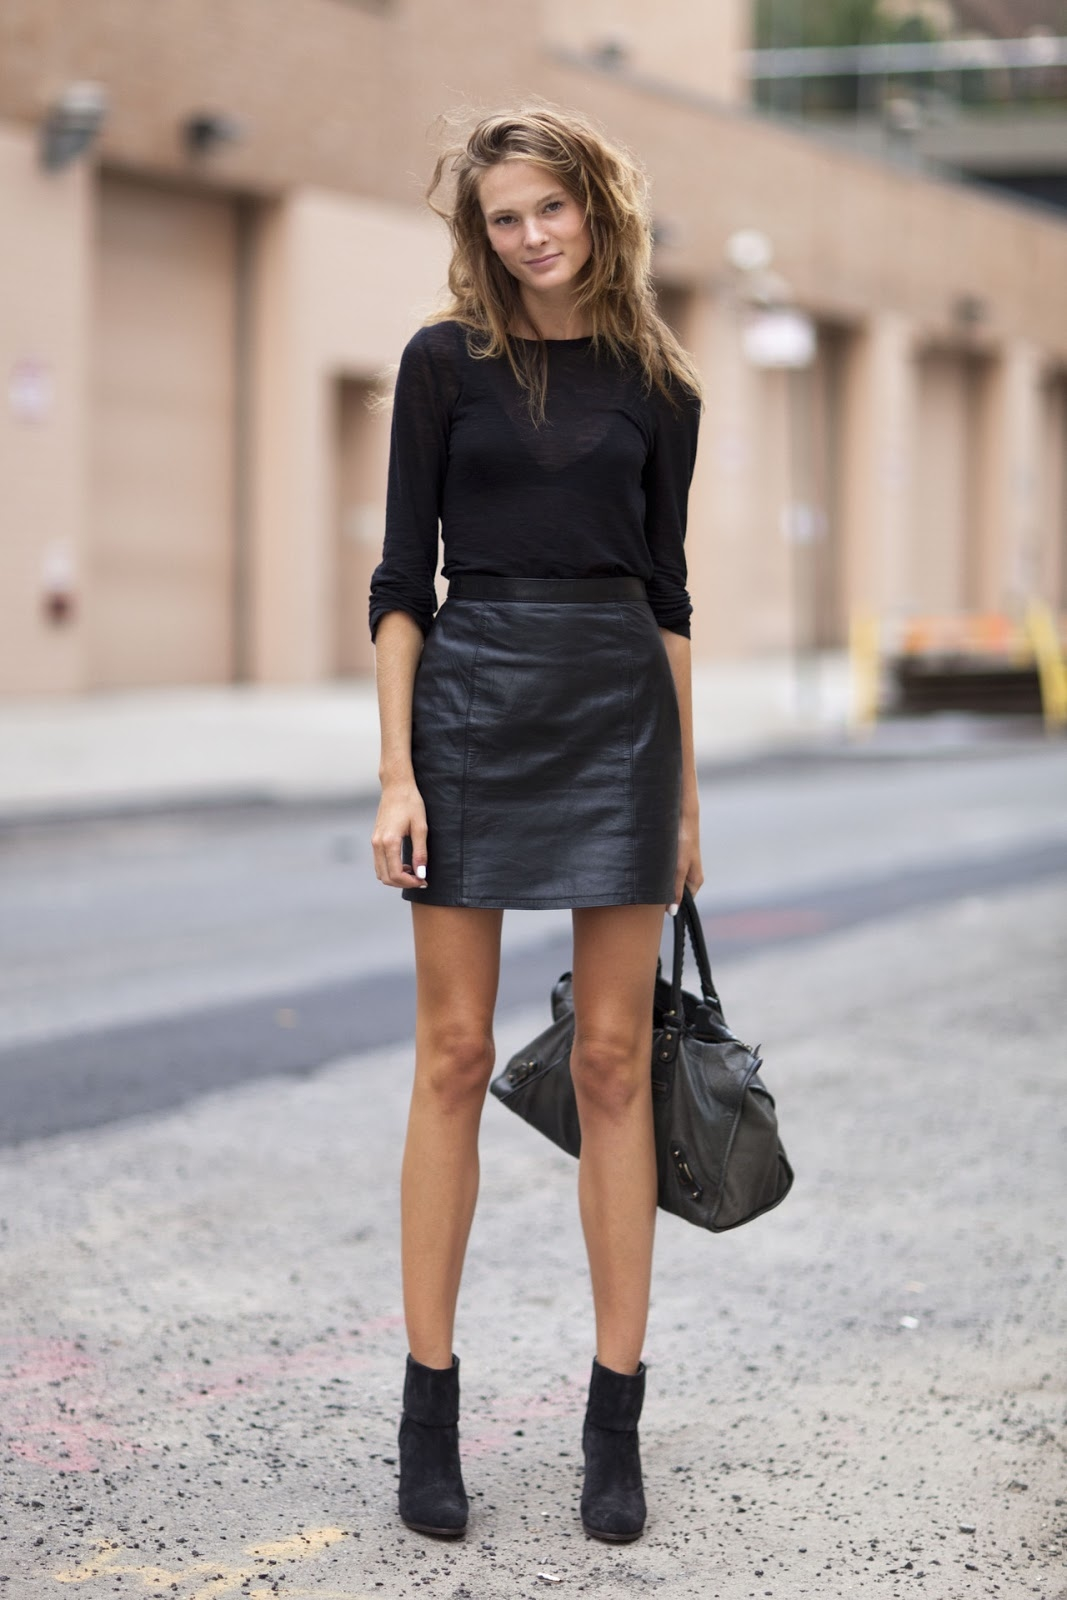 Leather Mini Skirt Tumblr